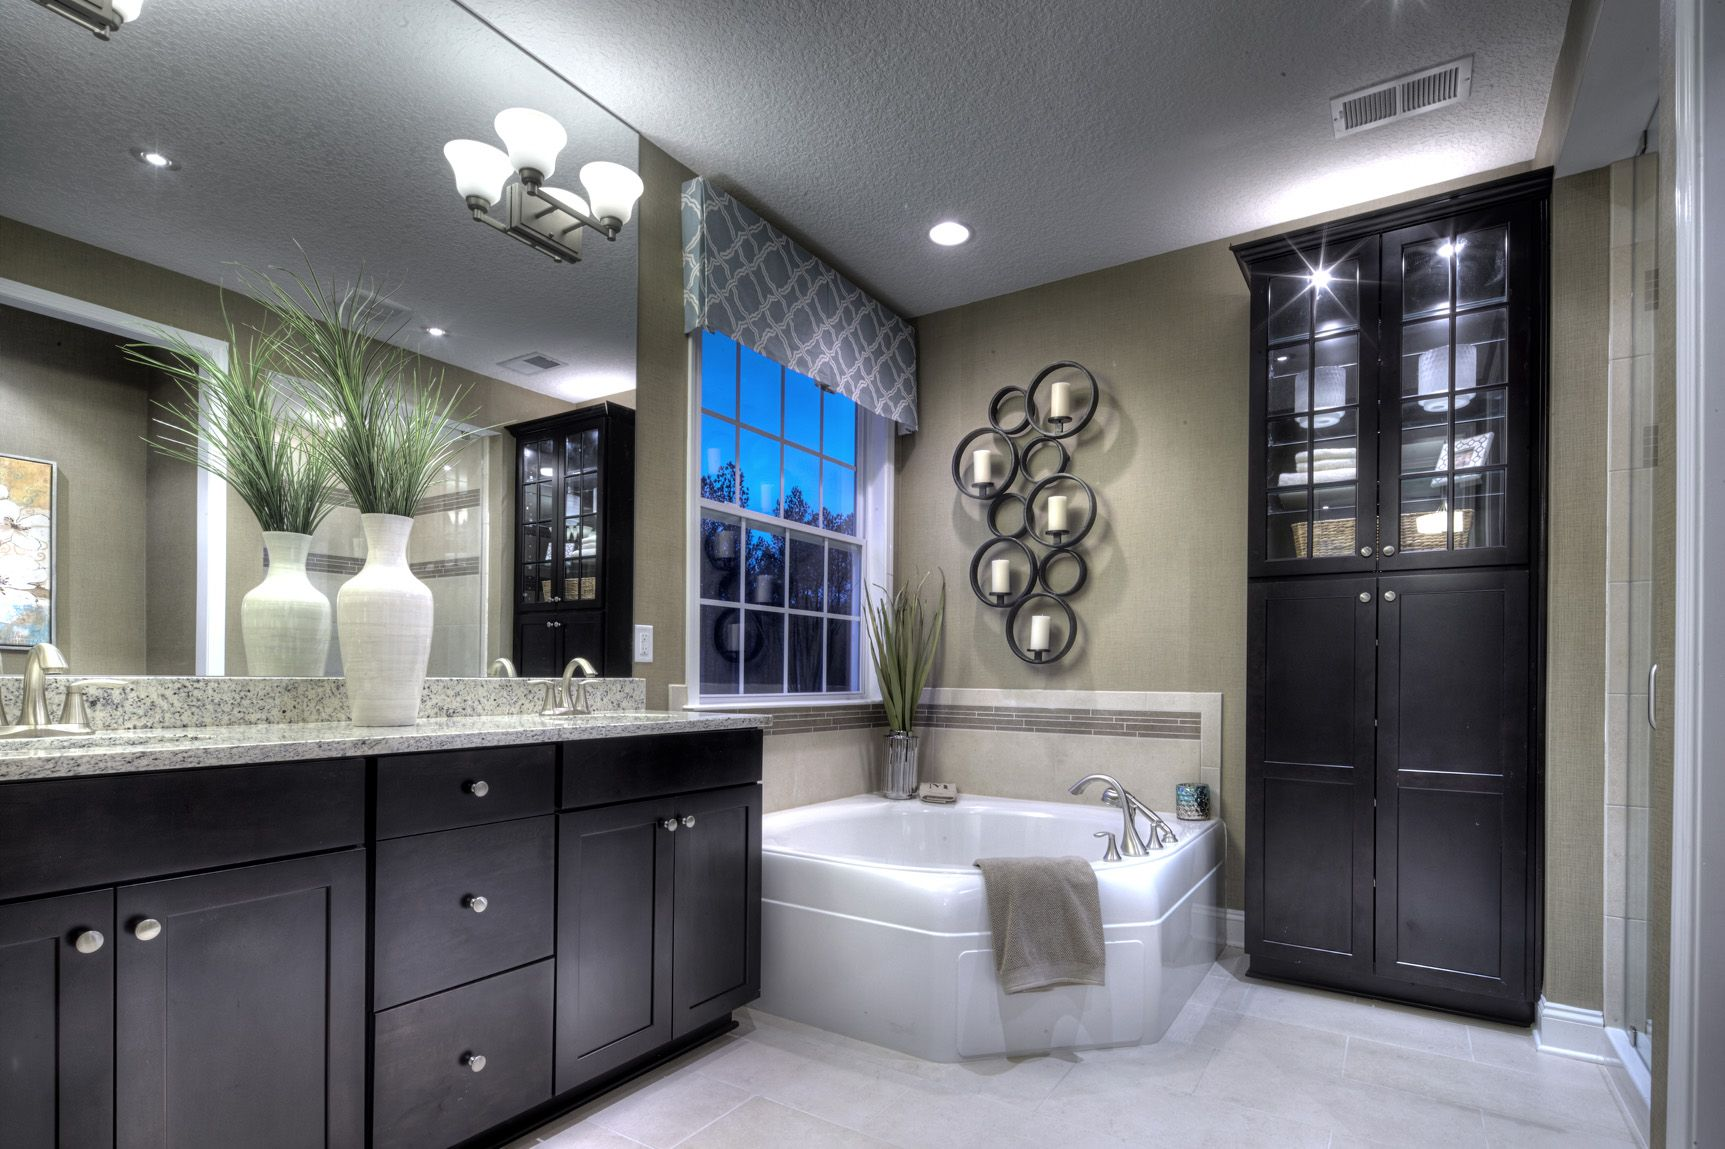 Just Another Mattamy Bathroom With A Touch Of Elegance